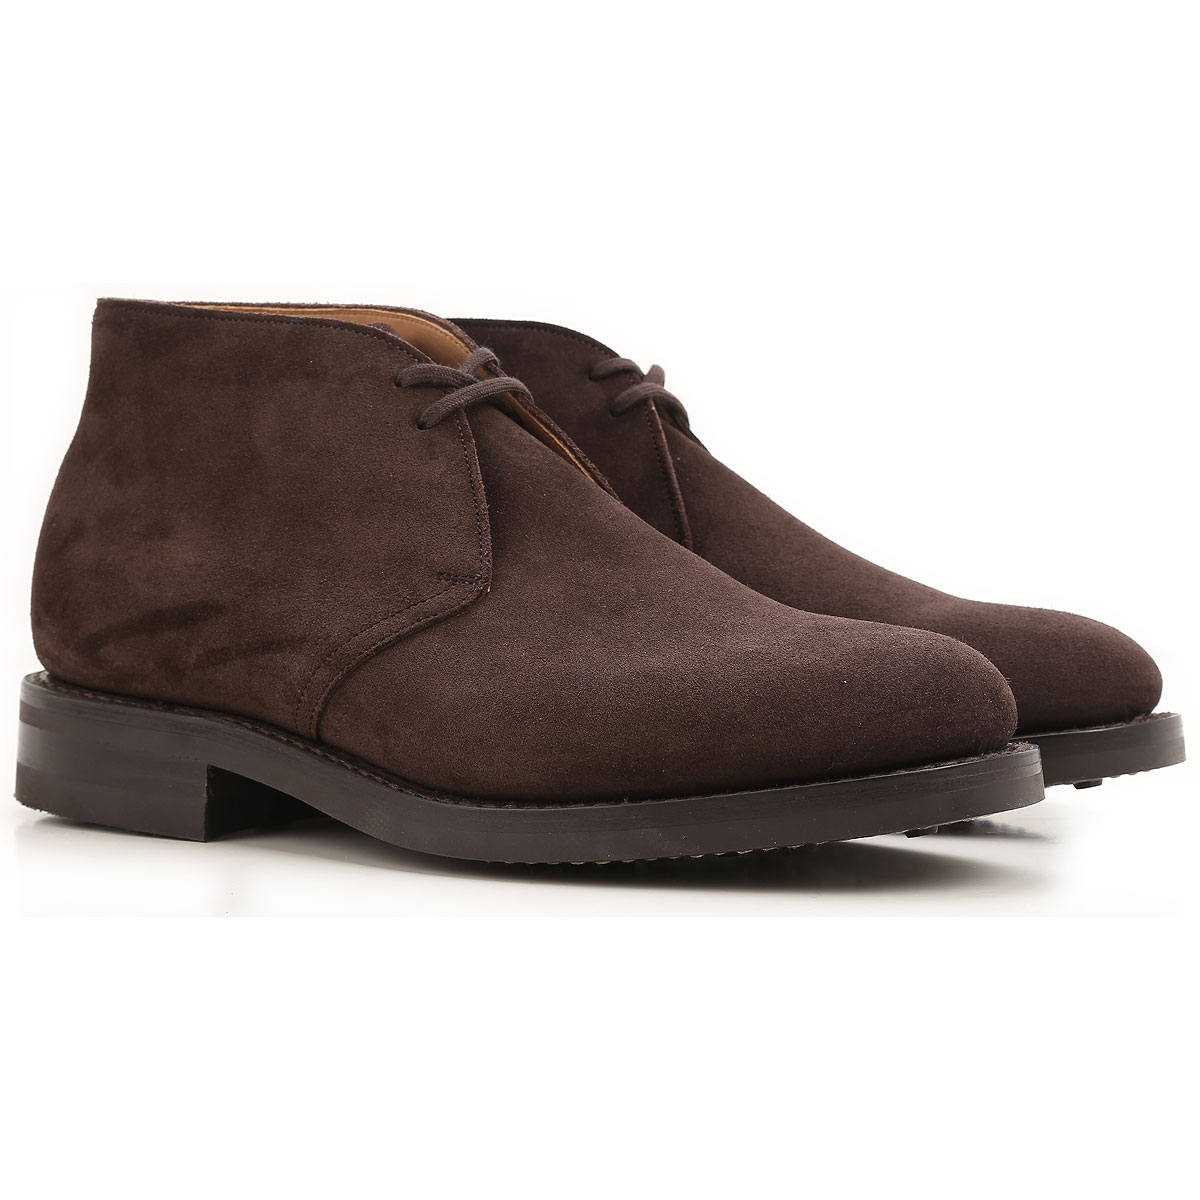 Image of Church's Desert Boots Chukka for Men On Sale, Ryder3, Dark Brown, Suede leather, 2017, 7 7.5 8